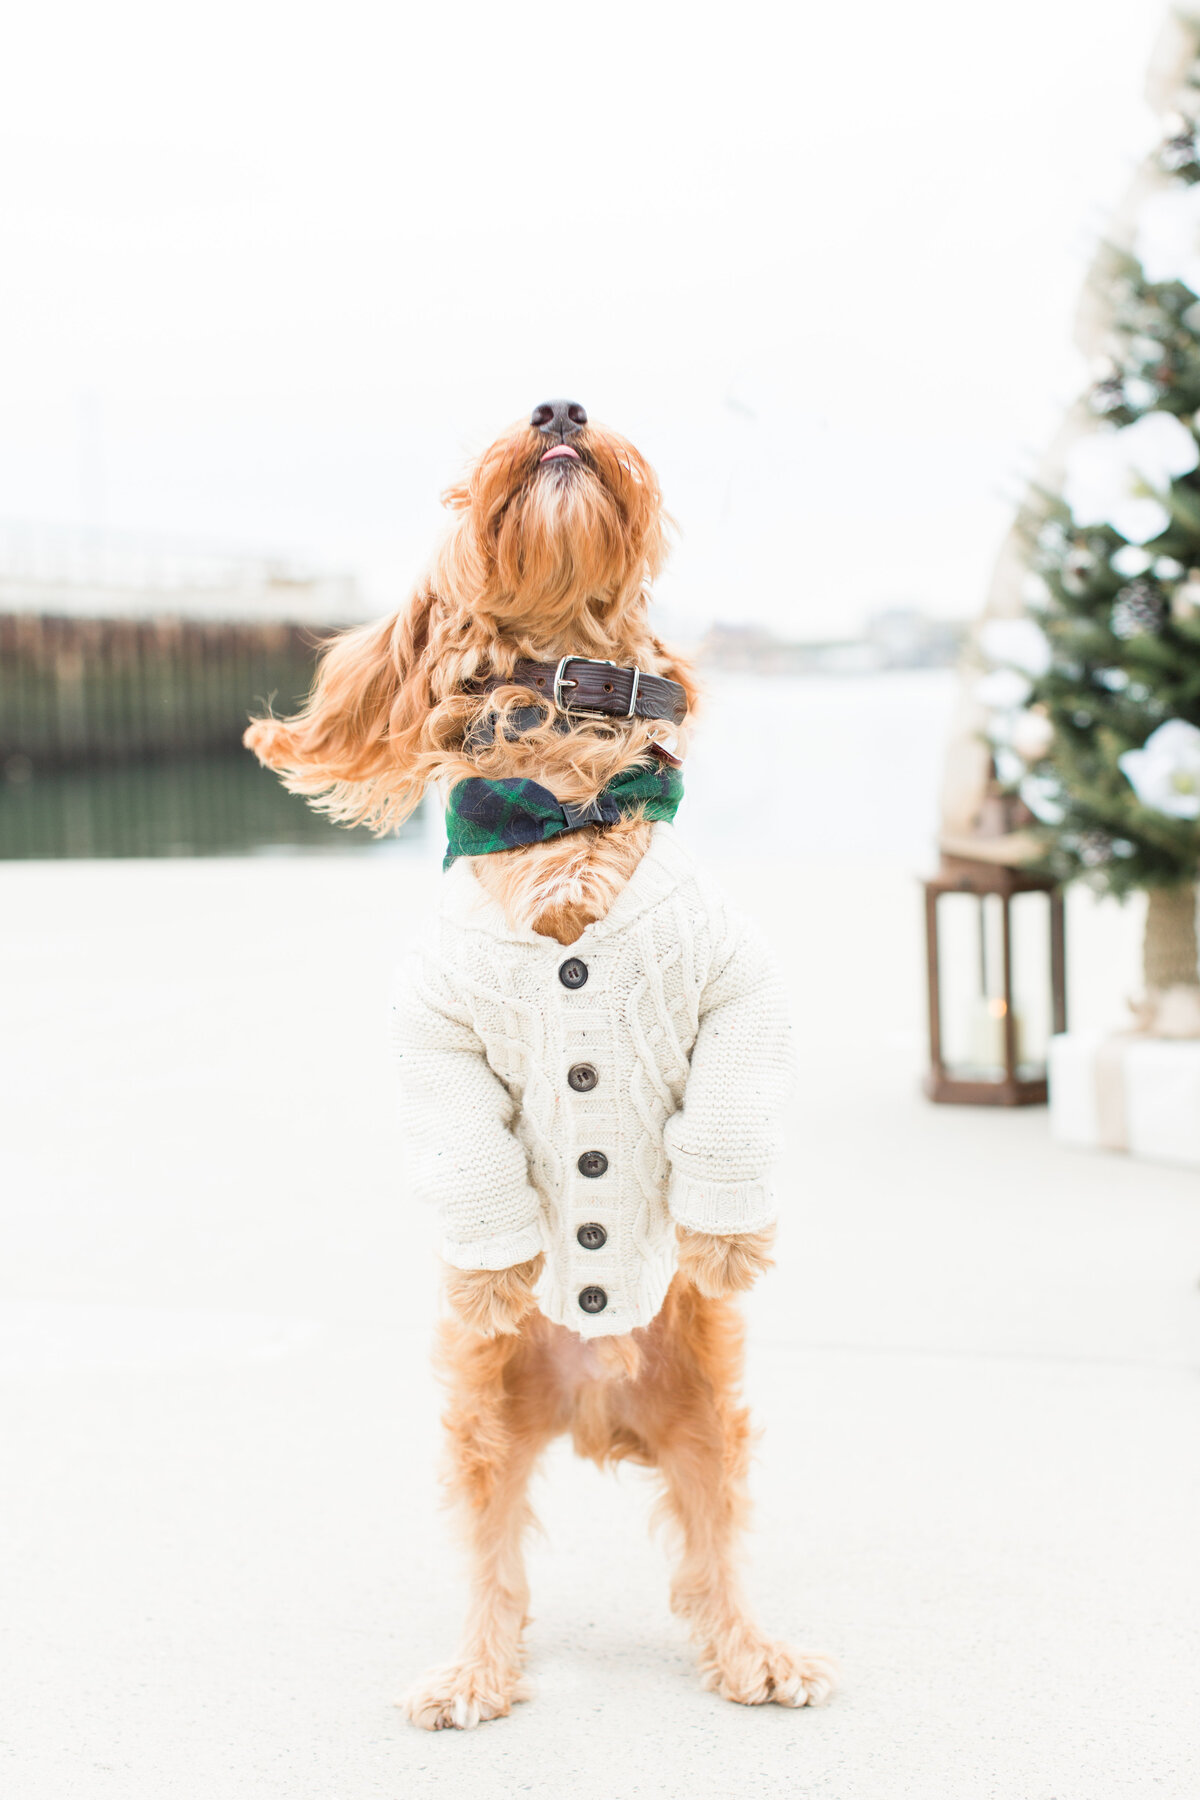 Goldendoodle wearing a sweater at Christmas